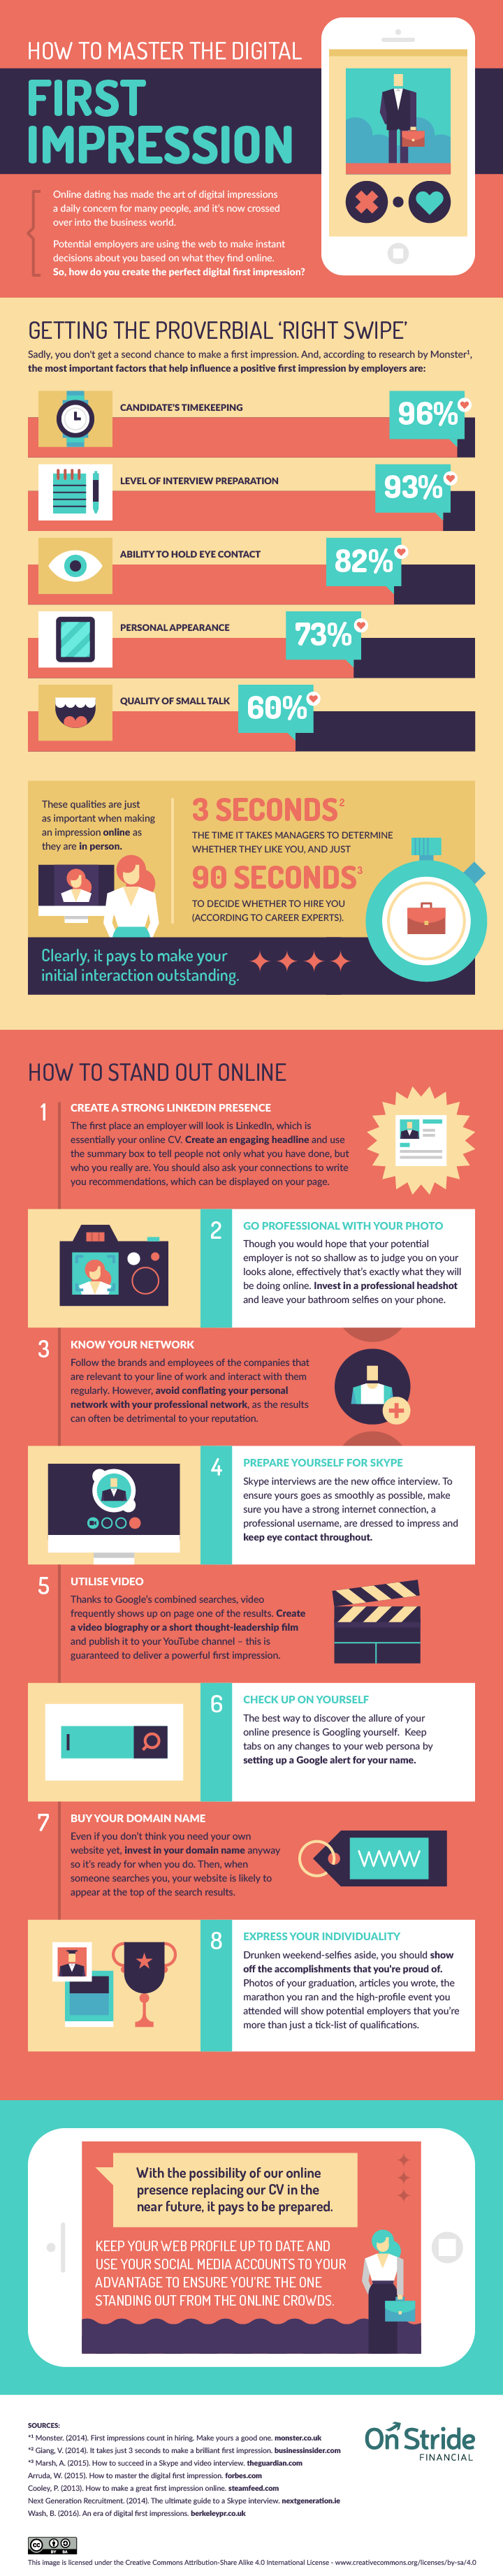 Infographic: How To Master The Digital First Impression